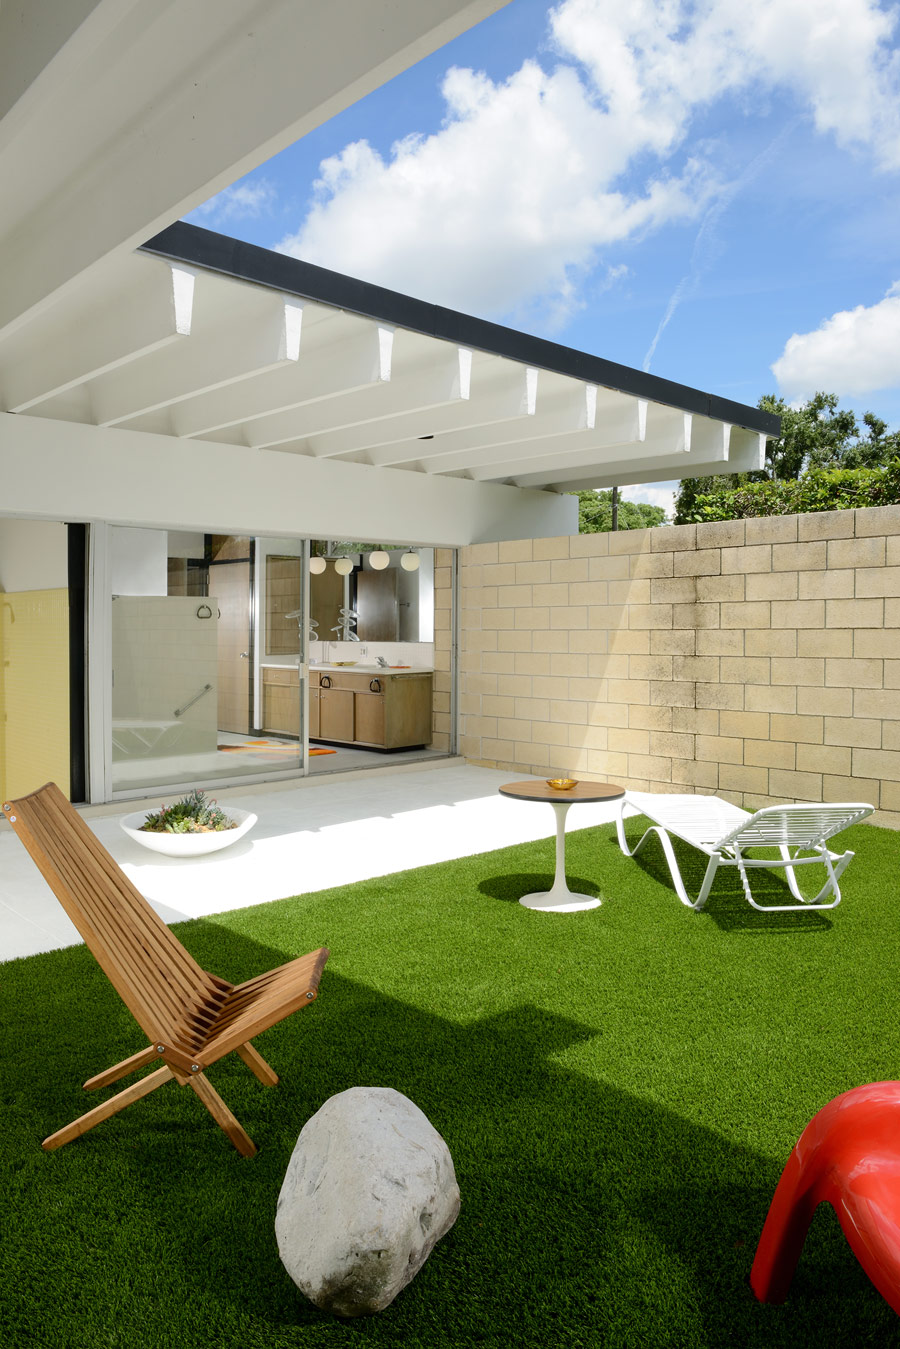 The outdoor space includes some loungers, sitting zones and a perfect lawn